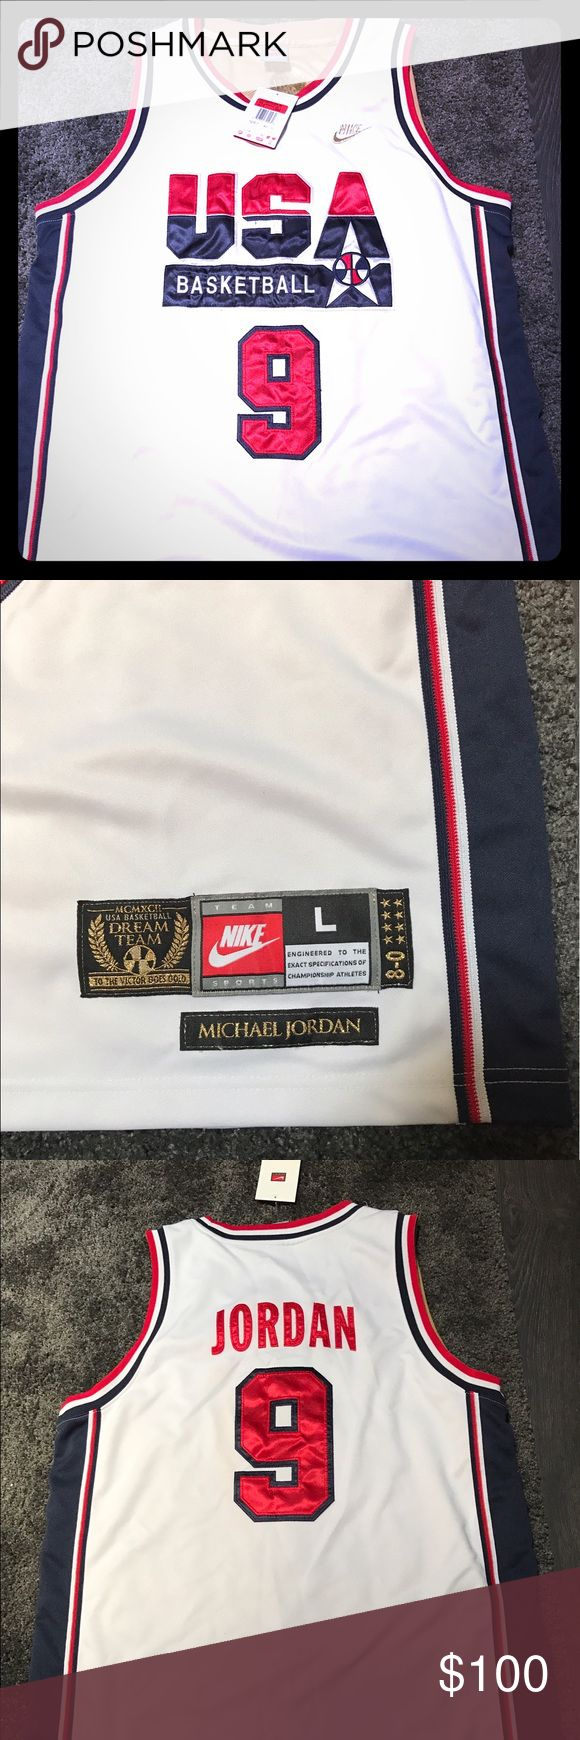 Jordan Olympic Dream Team 1992 Jersey New with tags- Michael Jordan Olympic Dream Team 1992 Jersey- white throwback jersey Jordan Other